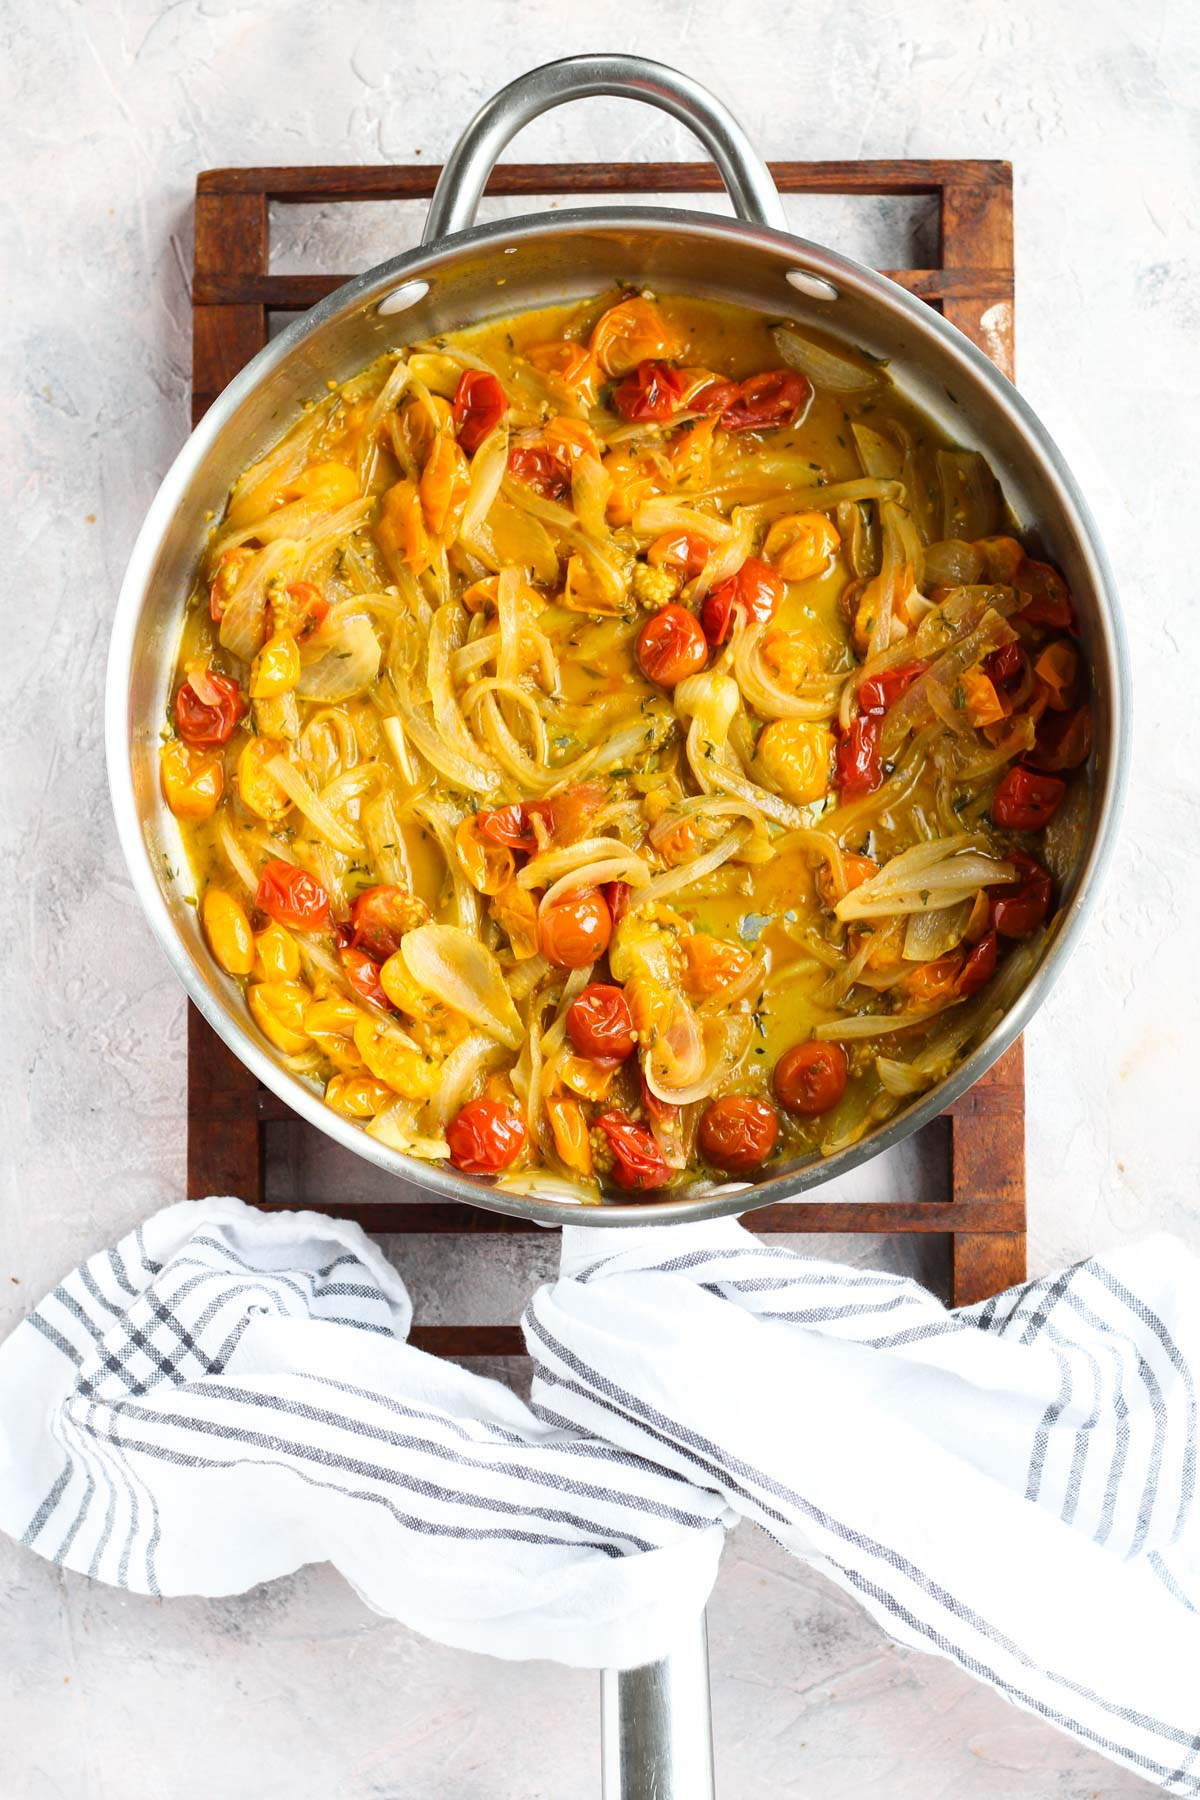 Caramelized onions with cherry tomatoes and herbs cooking in a pan.